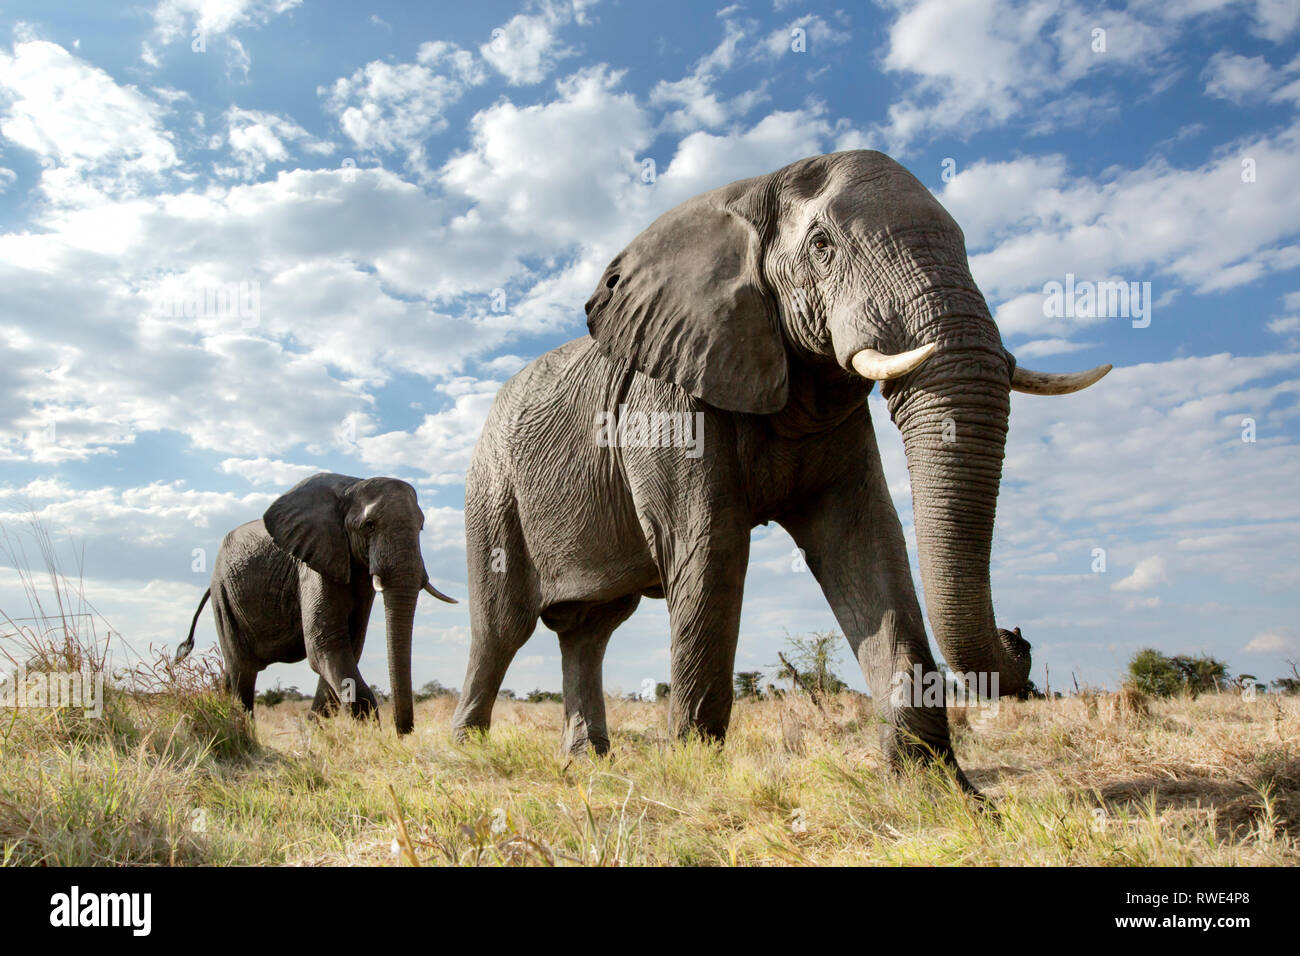 An abstract image from a low angle of elephants as they walk from Hwange national Park to Chobe National Park, Botswana. Stock Photo